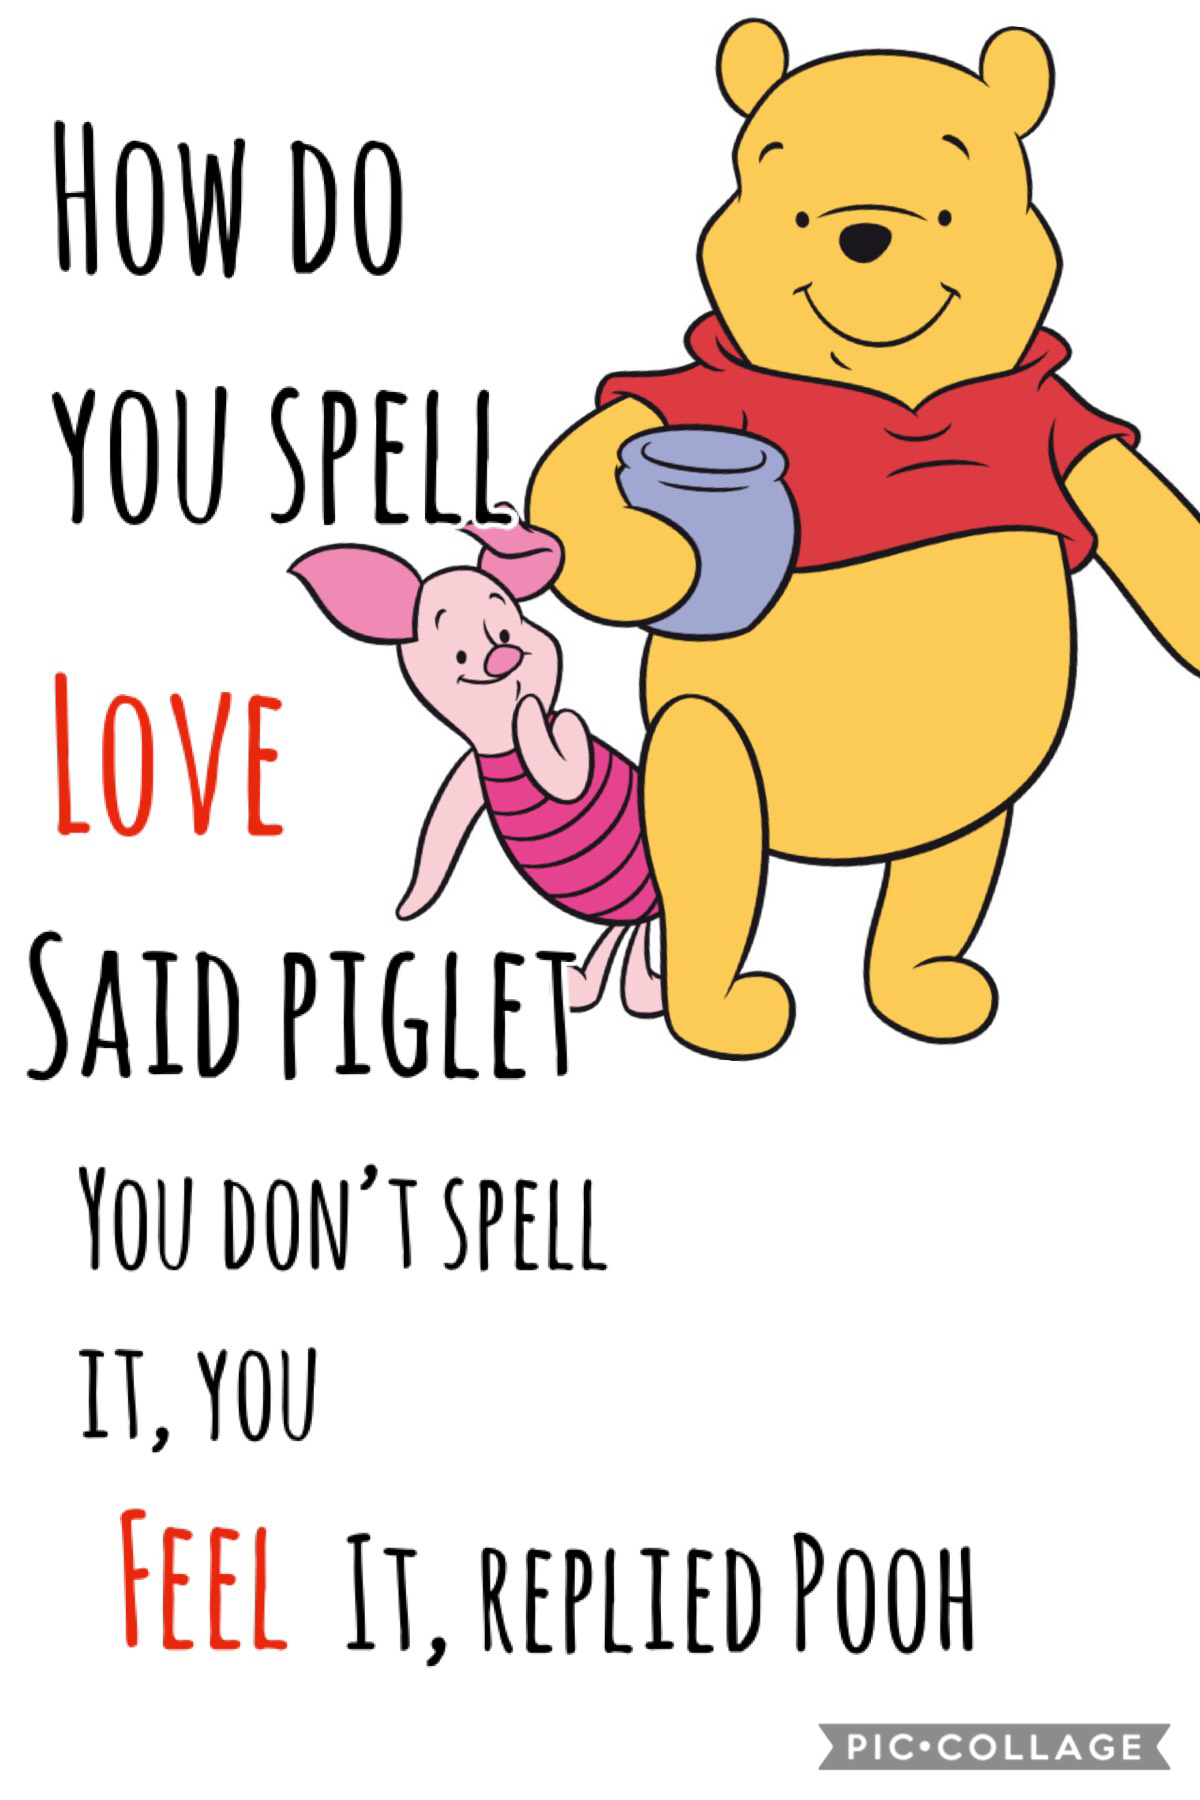 Like this post if you used to love Winnie the Pooh